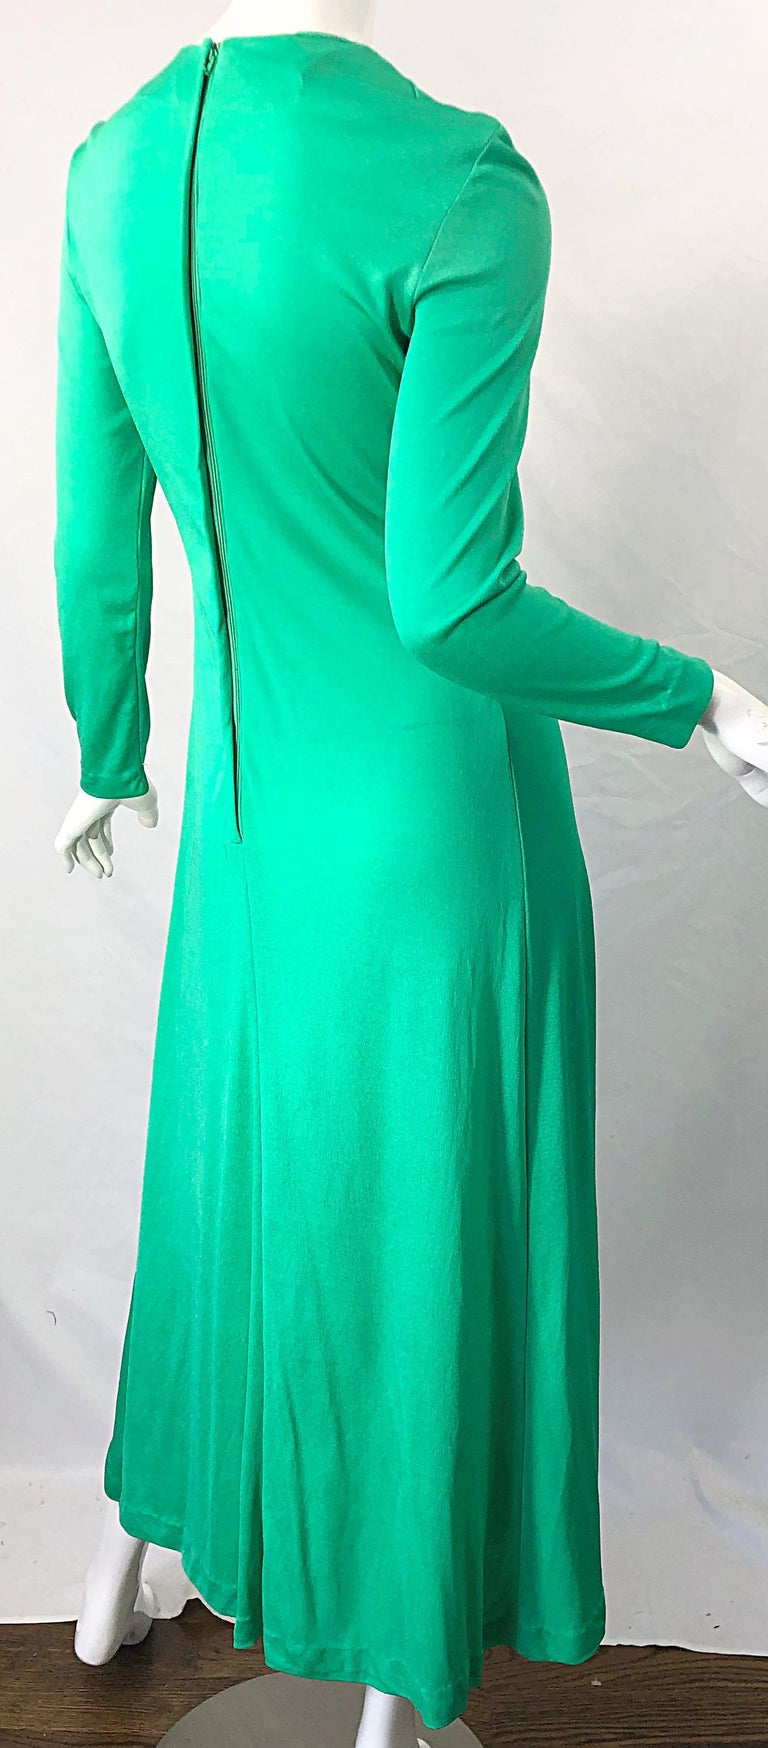 1970s Fredrick's of Hollywood Kelly Green Vintage Jersey 70s Maxi Dress For Sale 7